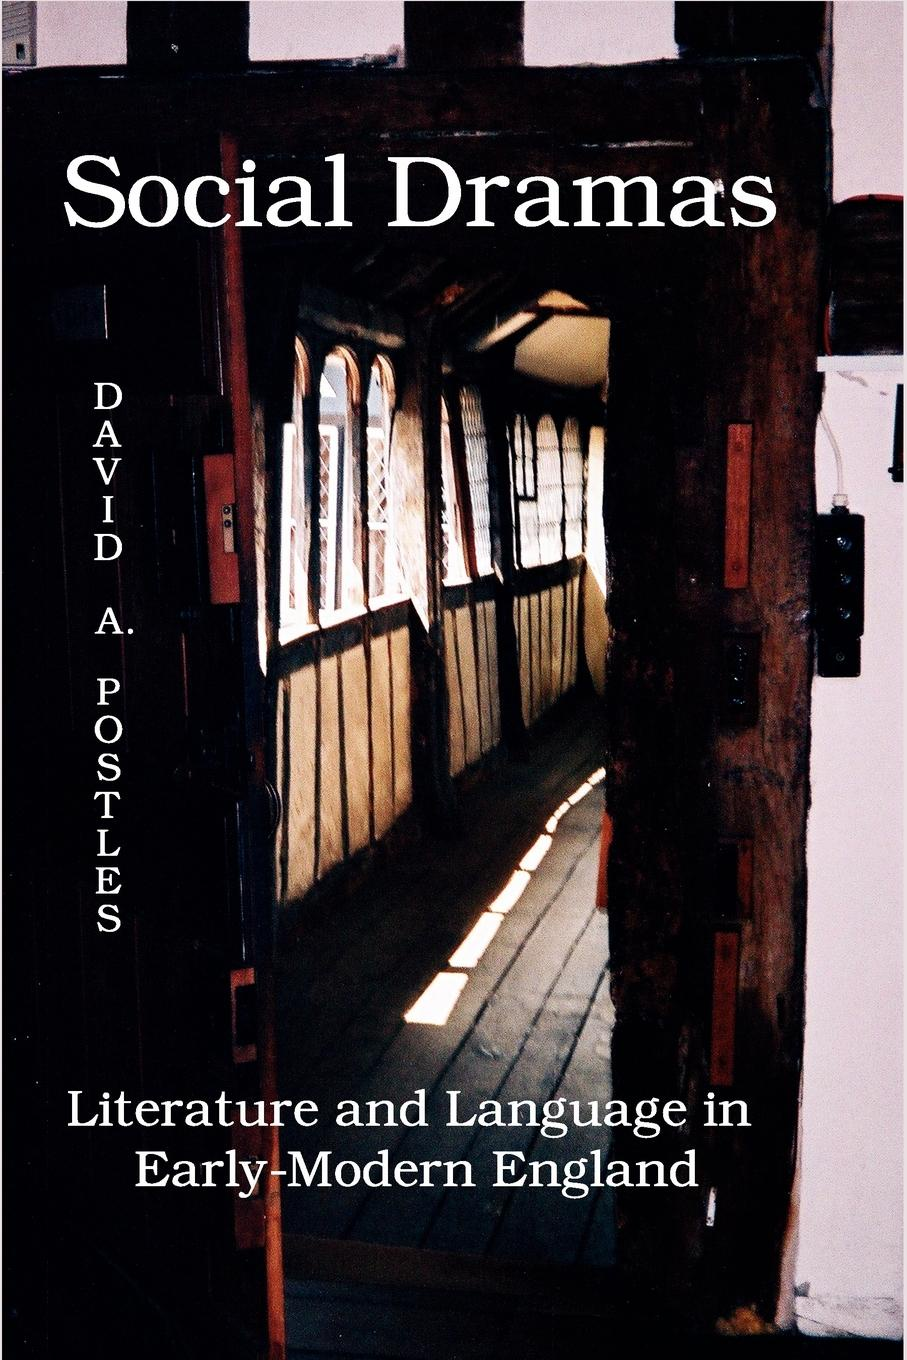 David A. Postles Social Dramas. Literature and Language in Early-Modern England. dulmus catherine n the profession of social work guided by history led by evidence